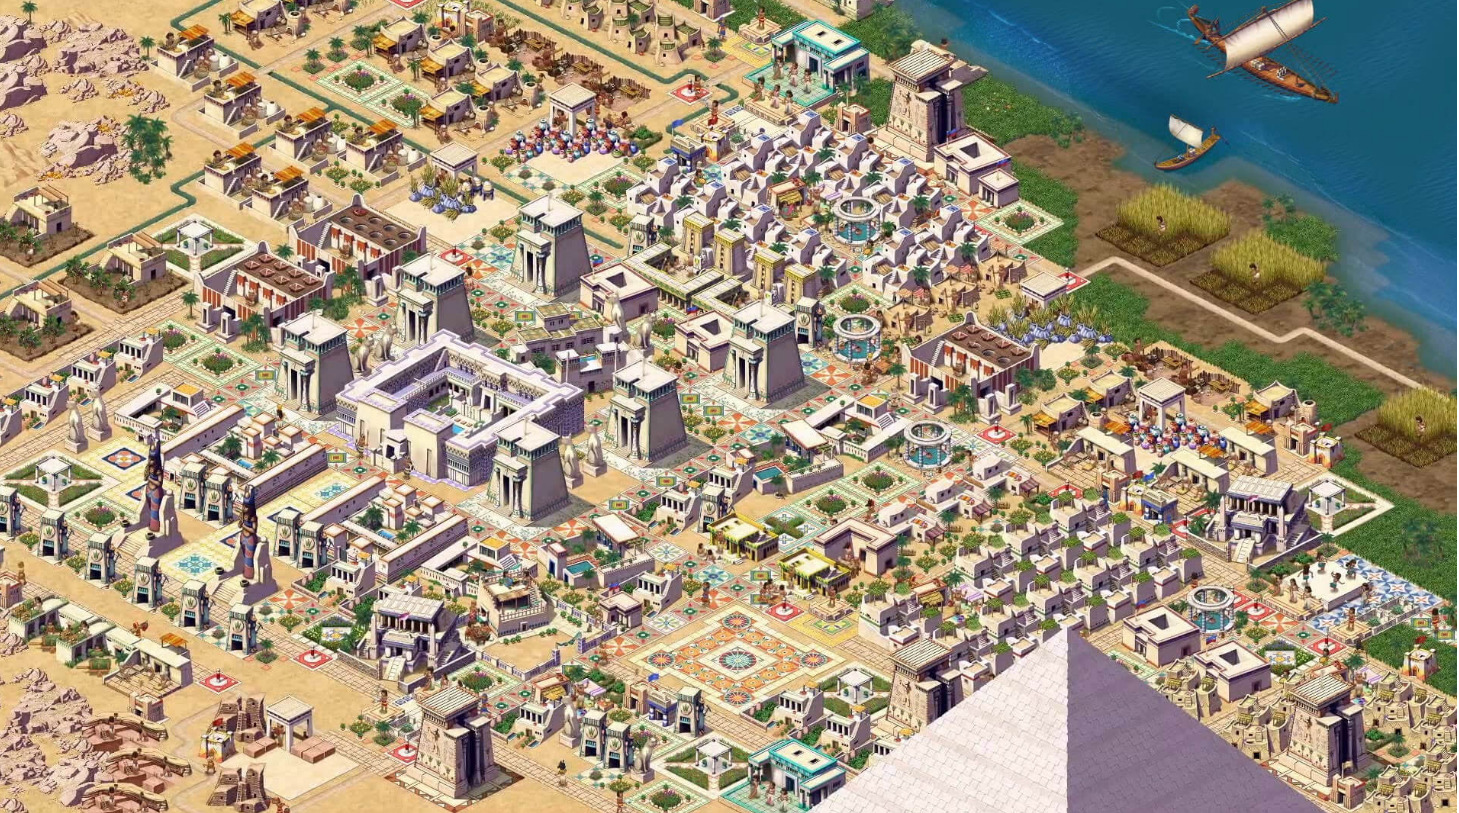 screenshot_2020-08-28-pharaoh-a-new-era-is-a-full-remake-of-the-1999-isometric-city-building-game-releases-in-2021